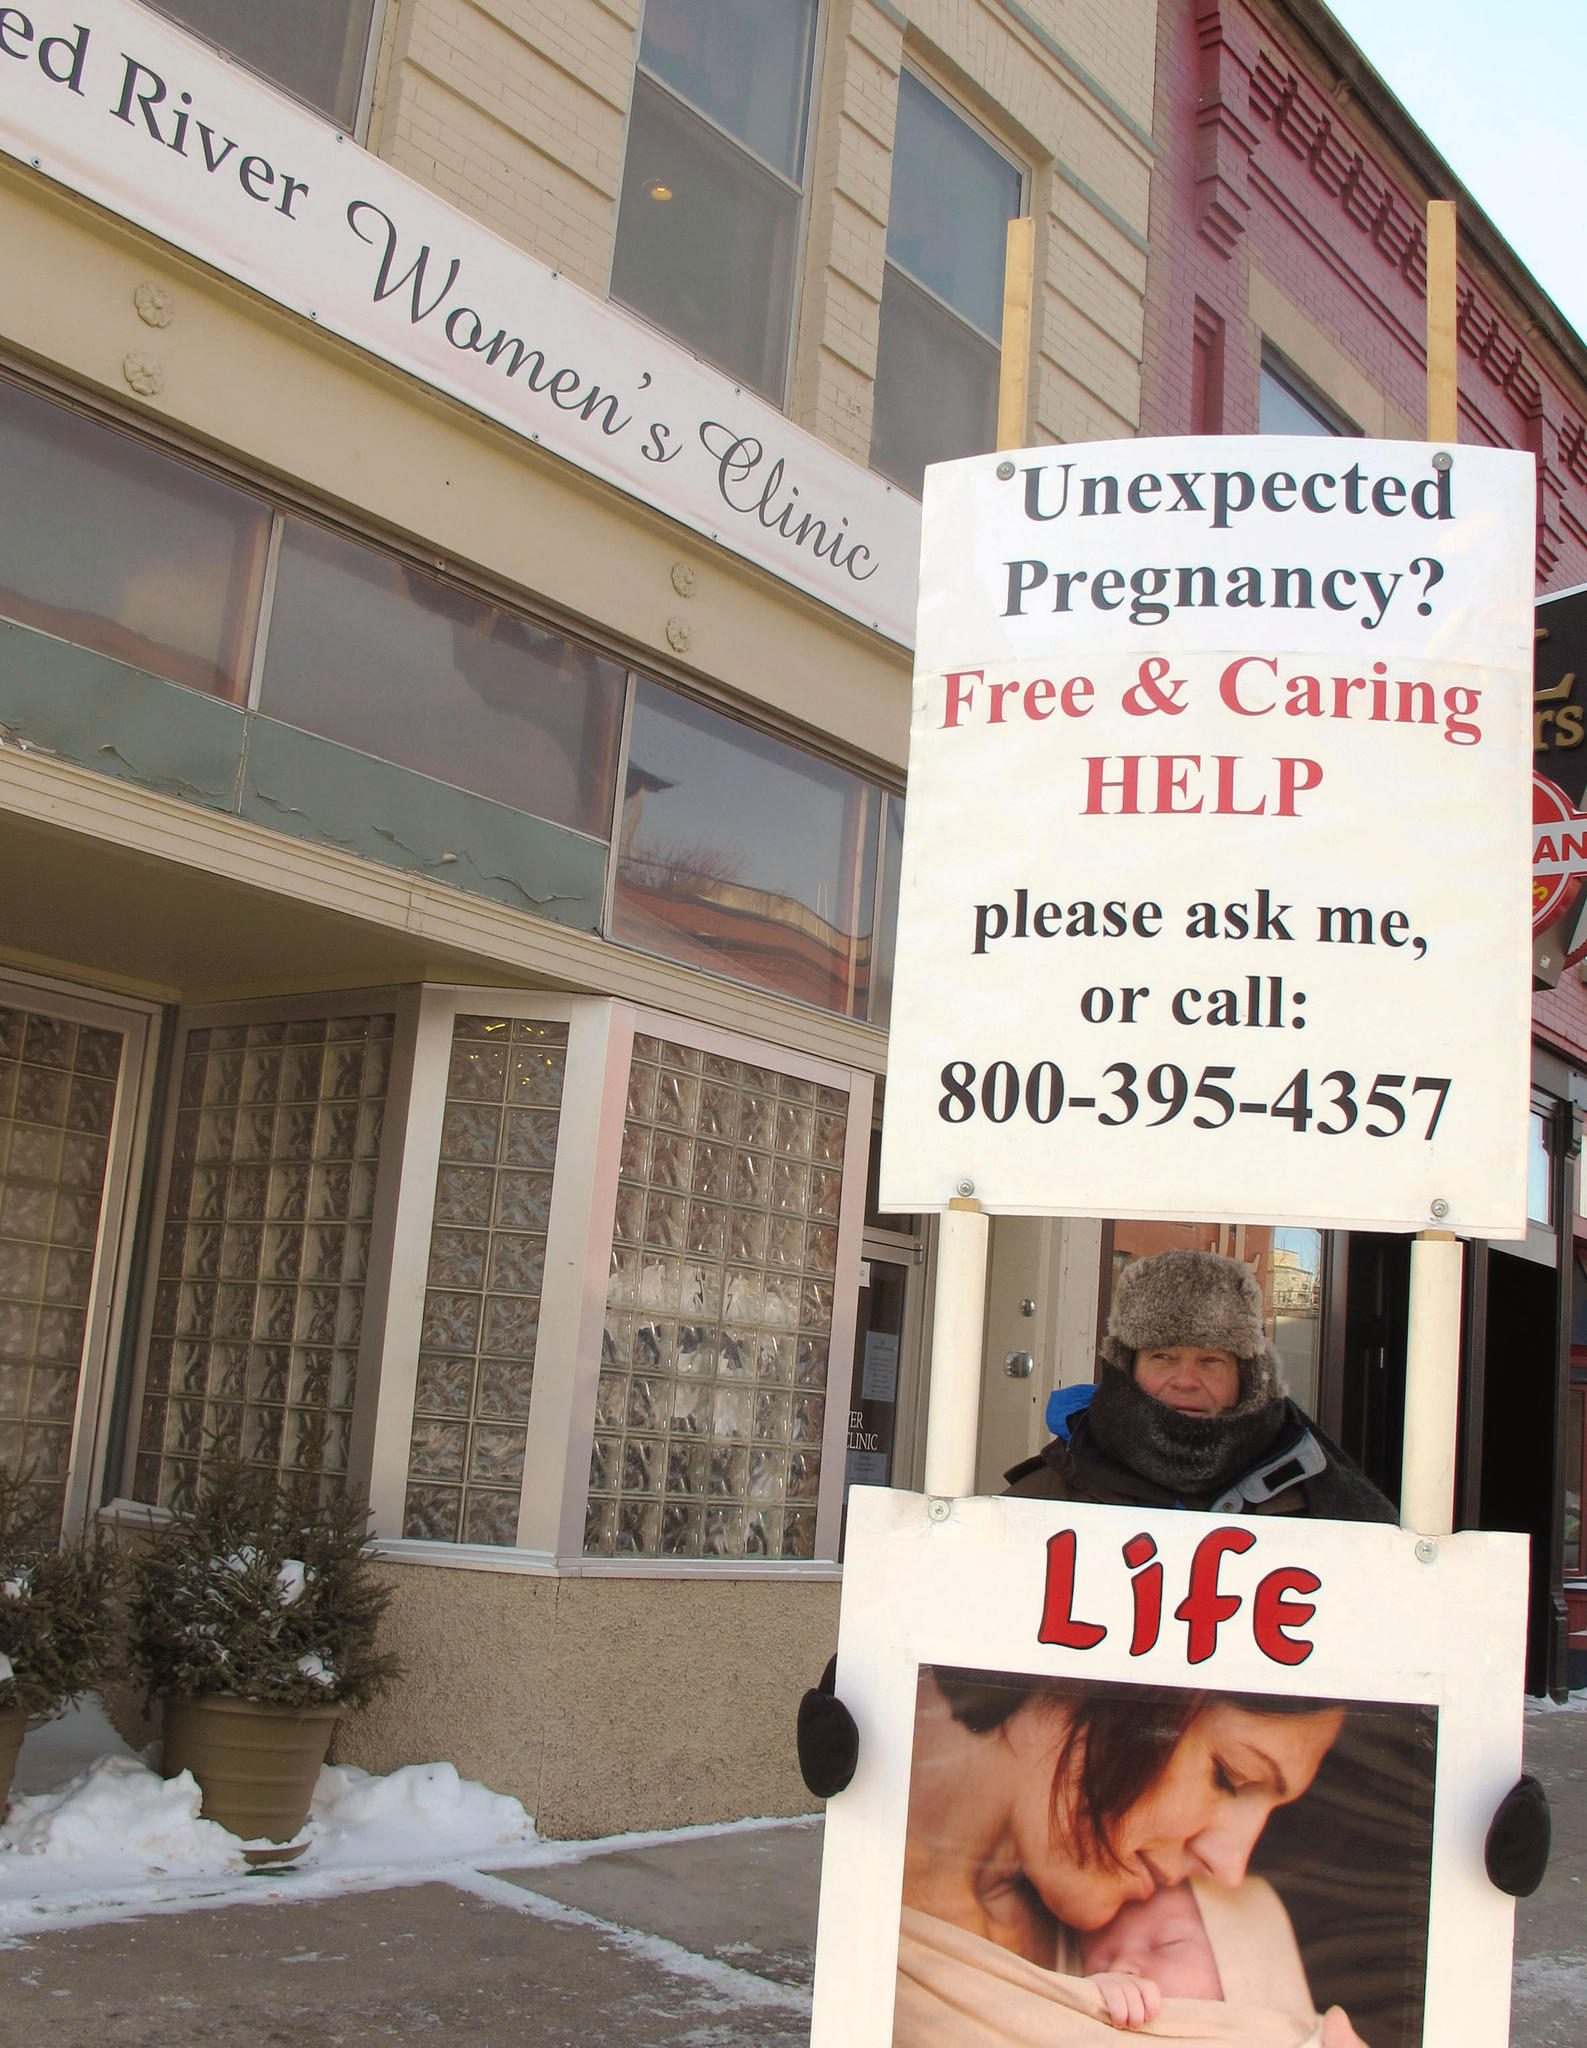 Protesters outside the Red River Valley Women's Clinic in Fargo, the only abortion provider in North Dakota. A federal judge ruled Wednesday that the state's ban on abortions after 6 weeks is unconstitutional.